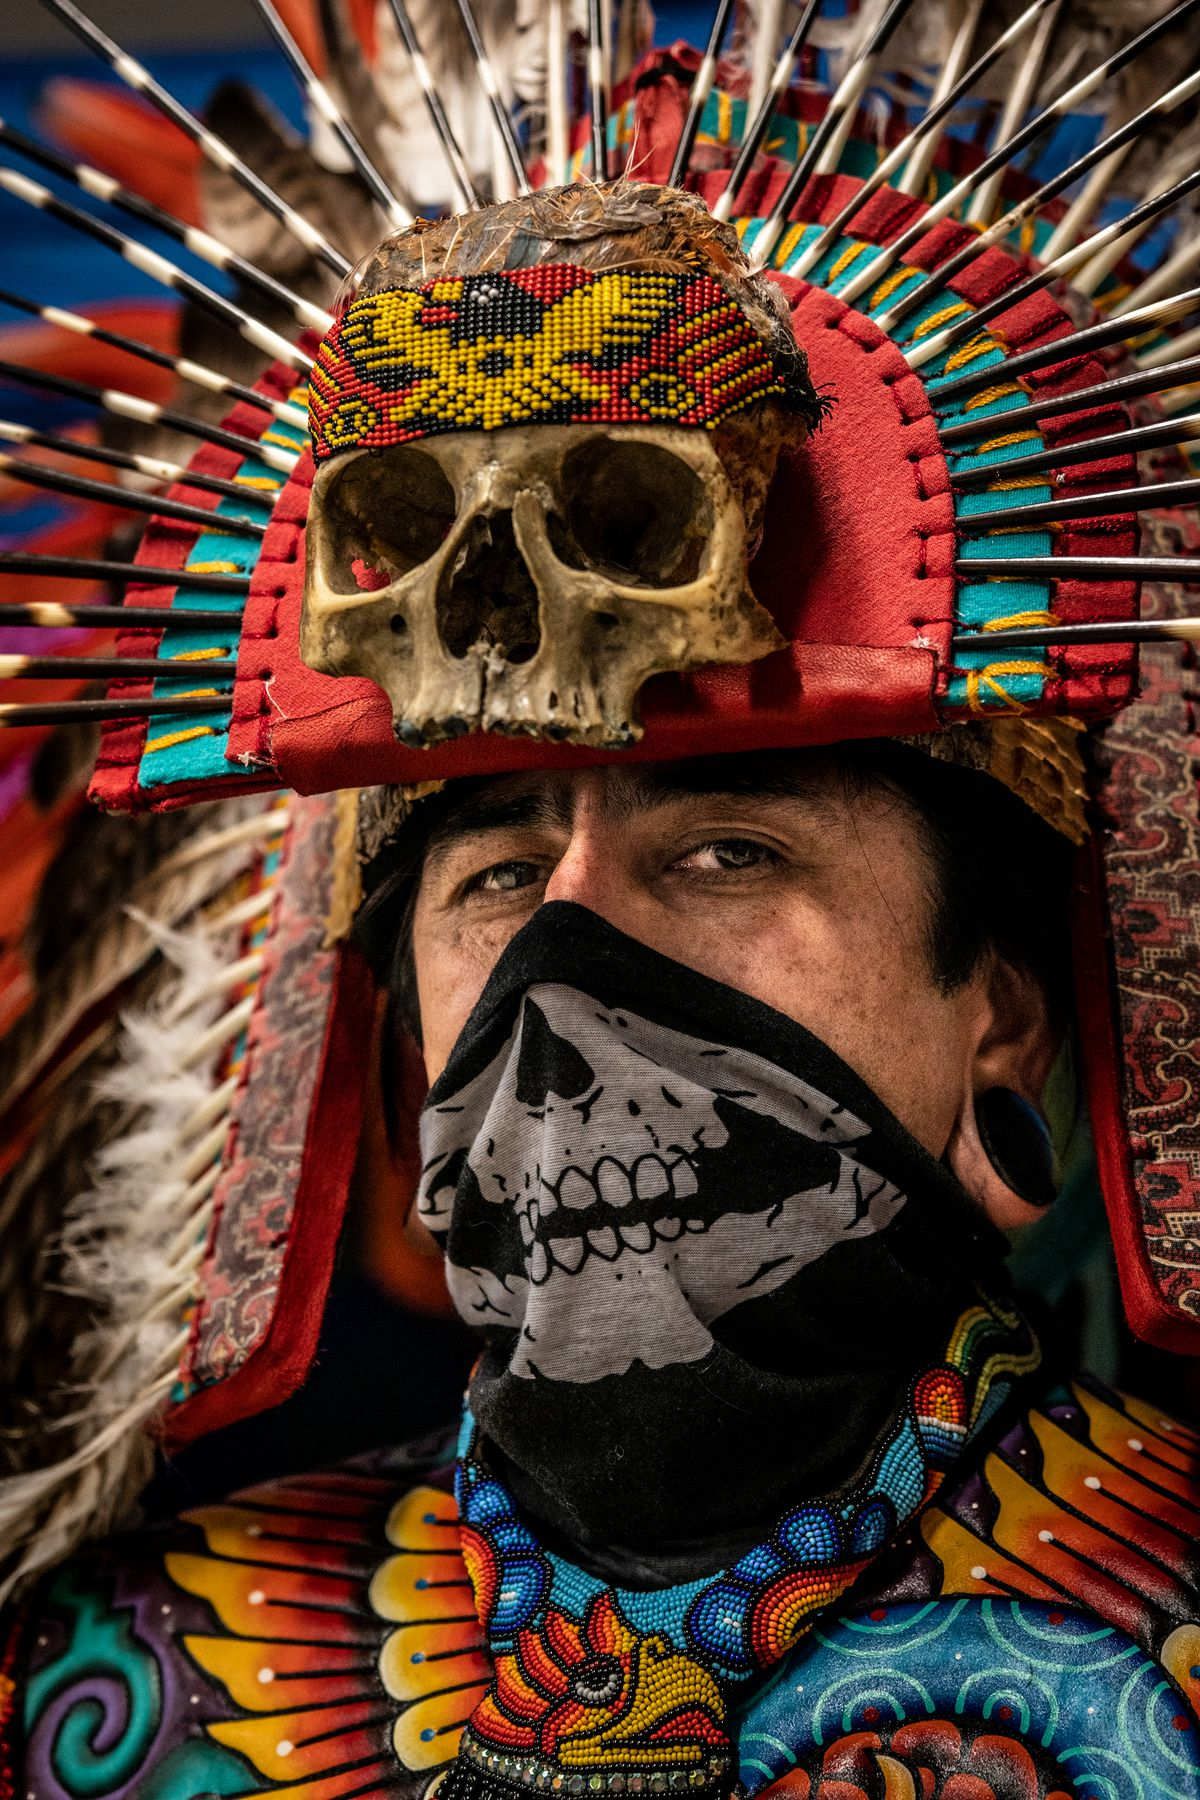 Dancer Gustavo Arias performed at Mixteca Organization in Atlanchinolli regalia, an Aztec metaphor for war that uses the polarities between water and fire for symbolism, Oct. 30 2020.